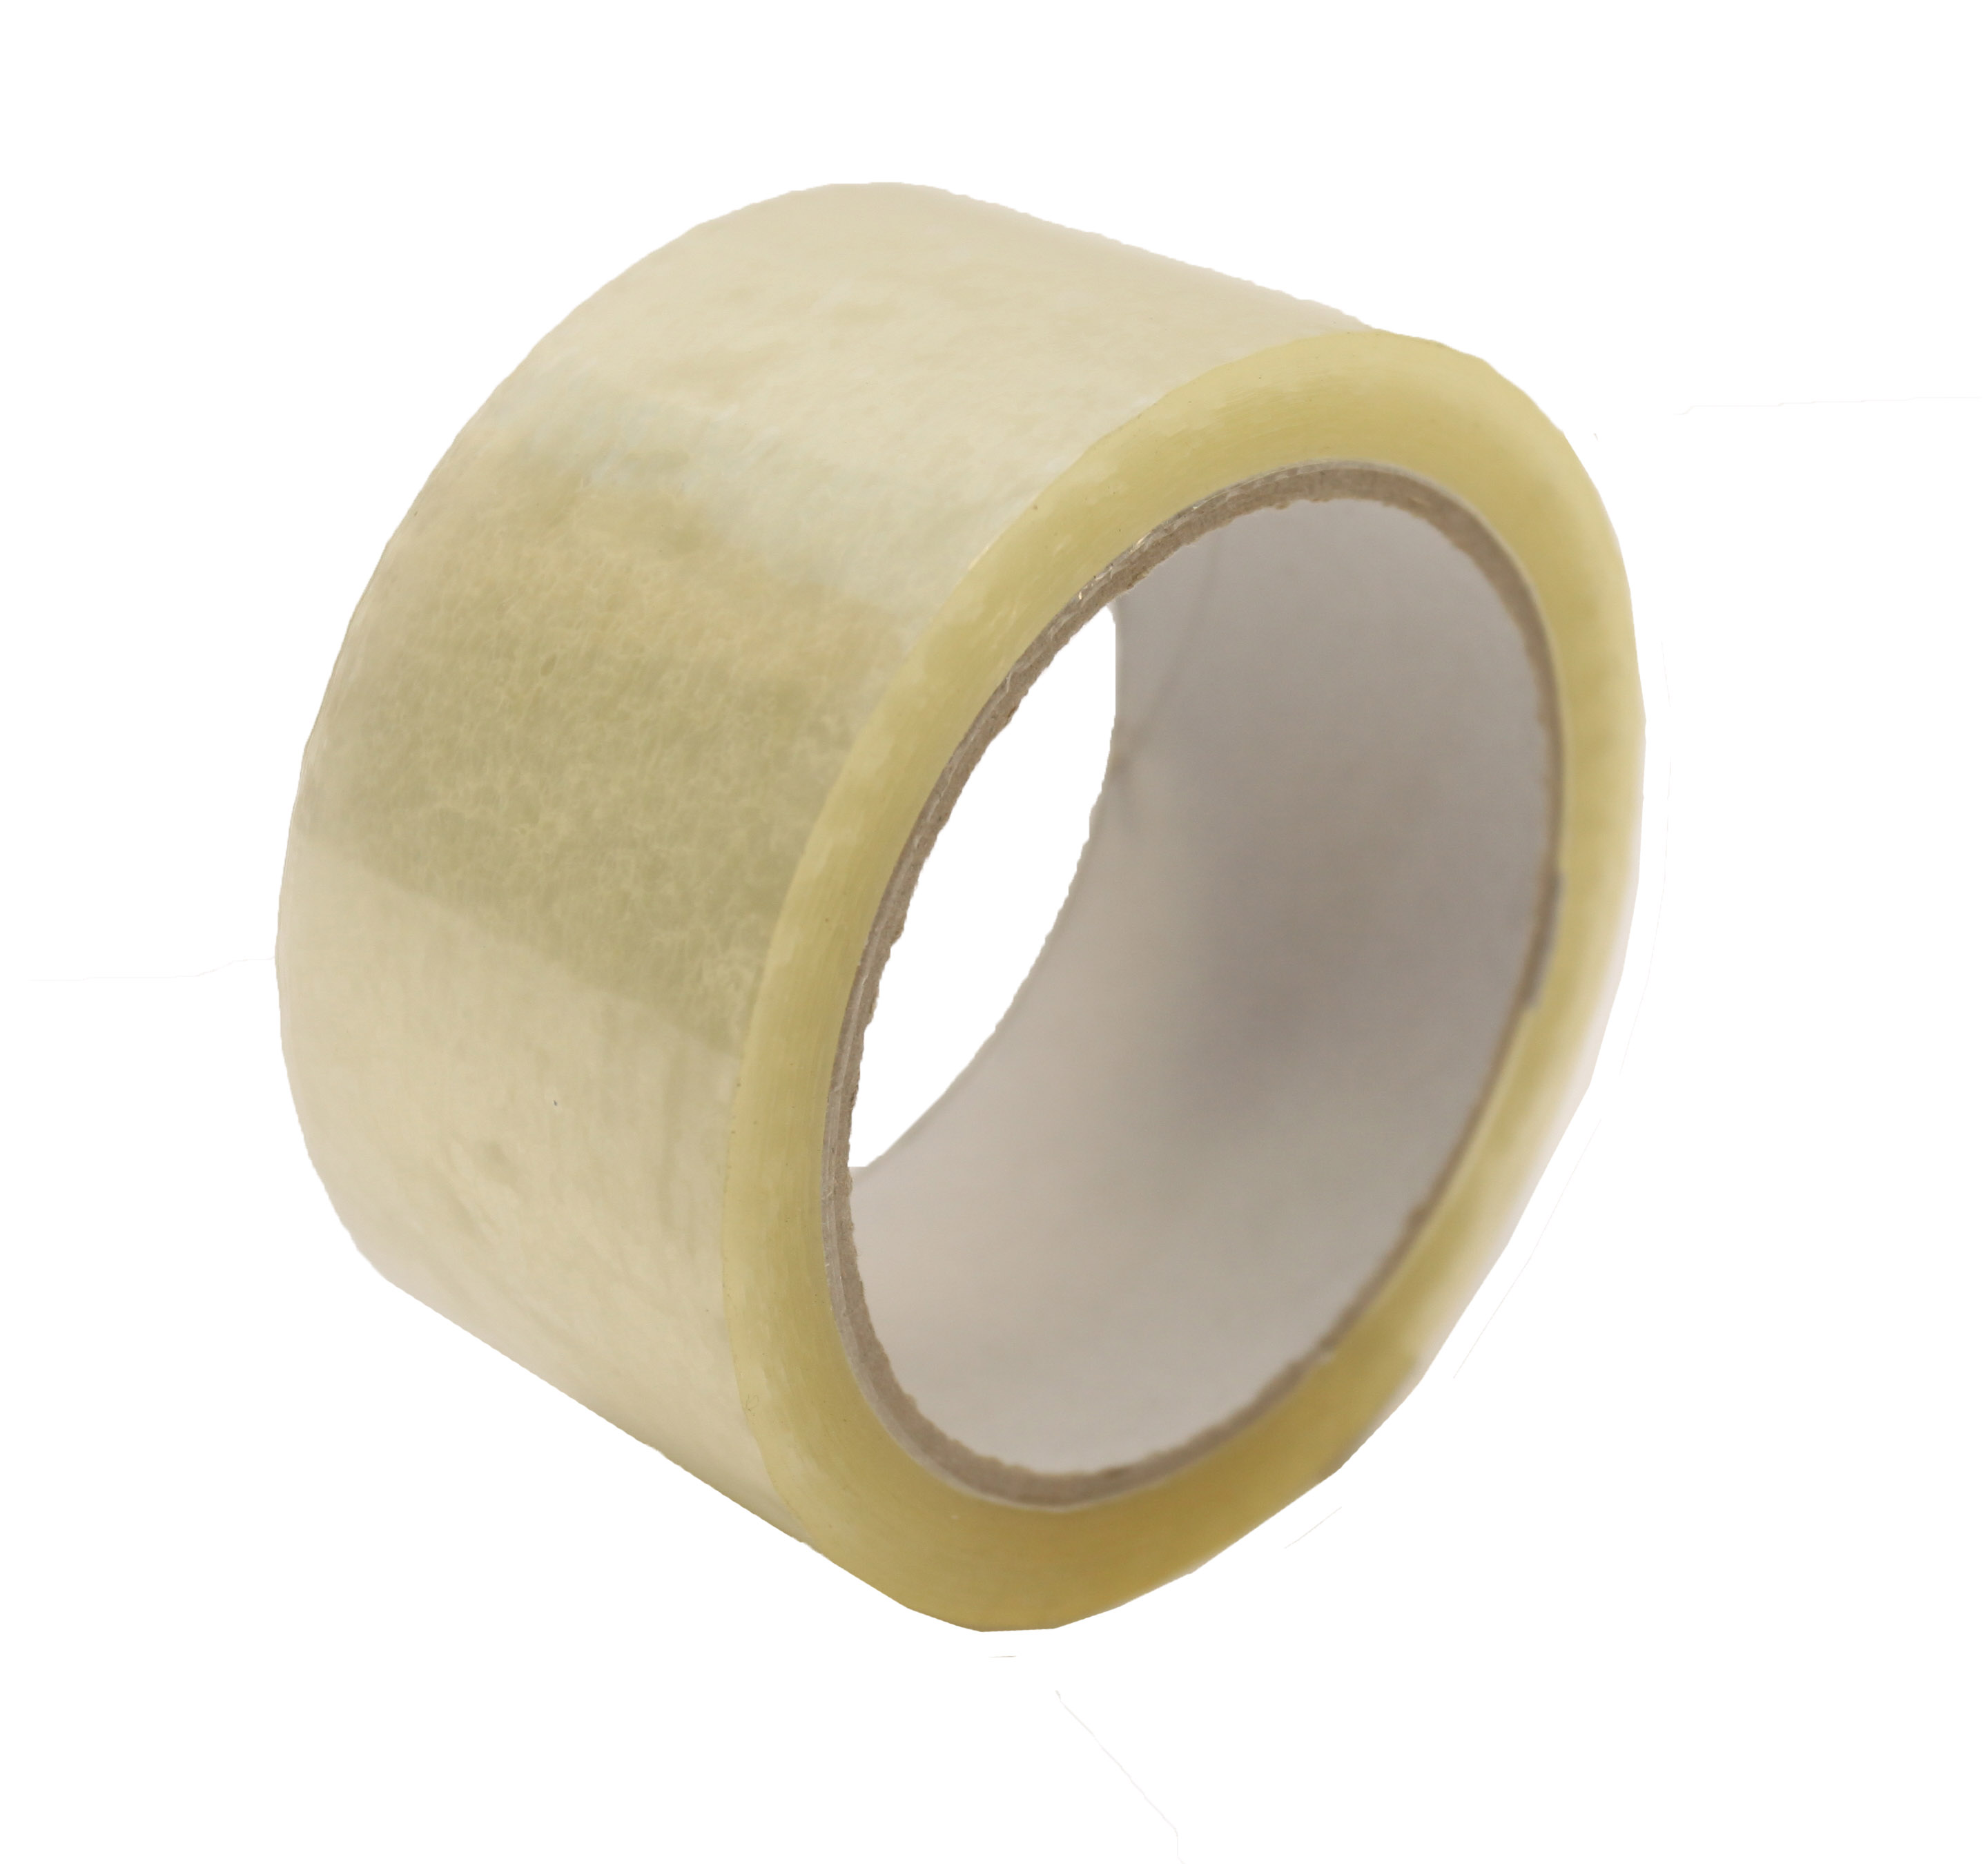 Value Clear Packing Tape 48x66m PK6